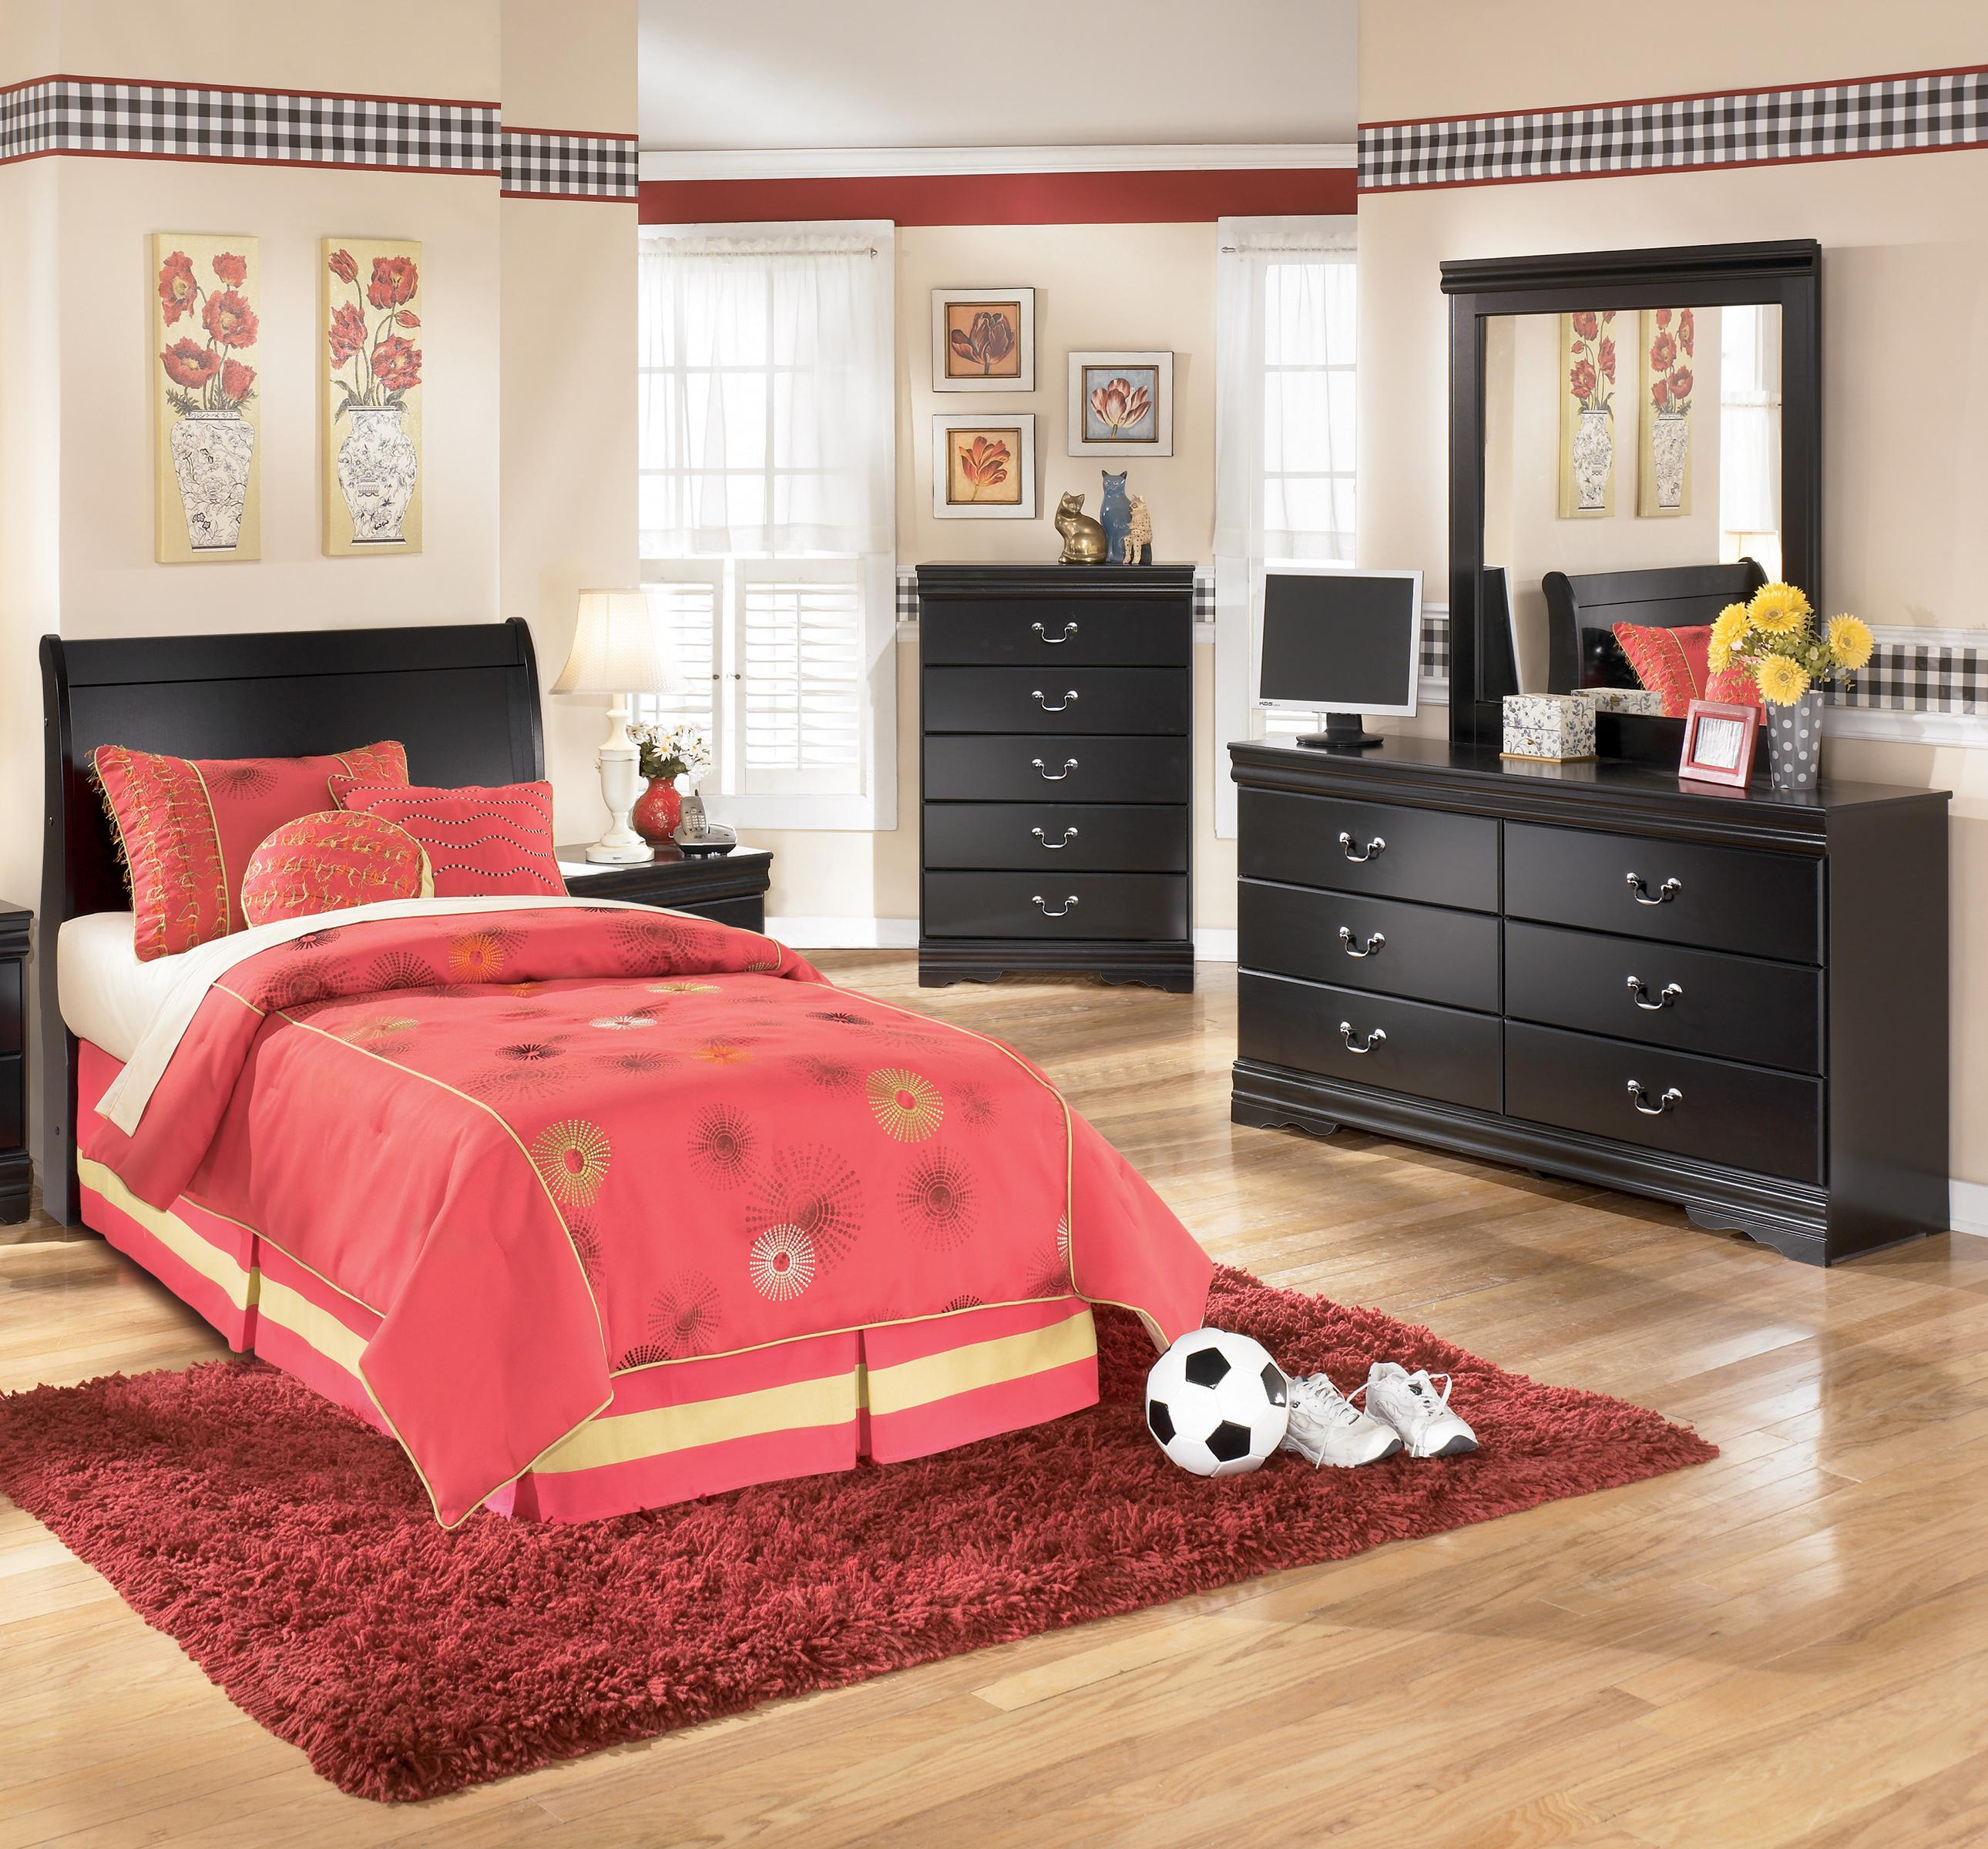 Huey Vineyard 3-Piece Twin Bedroom Group by Signature Design by Ashley at Furniture Barn